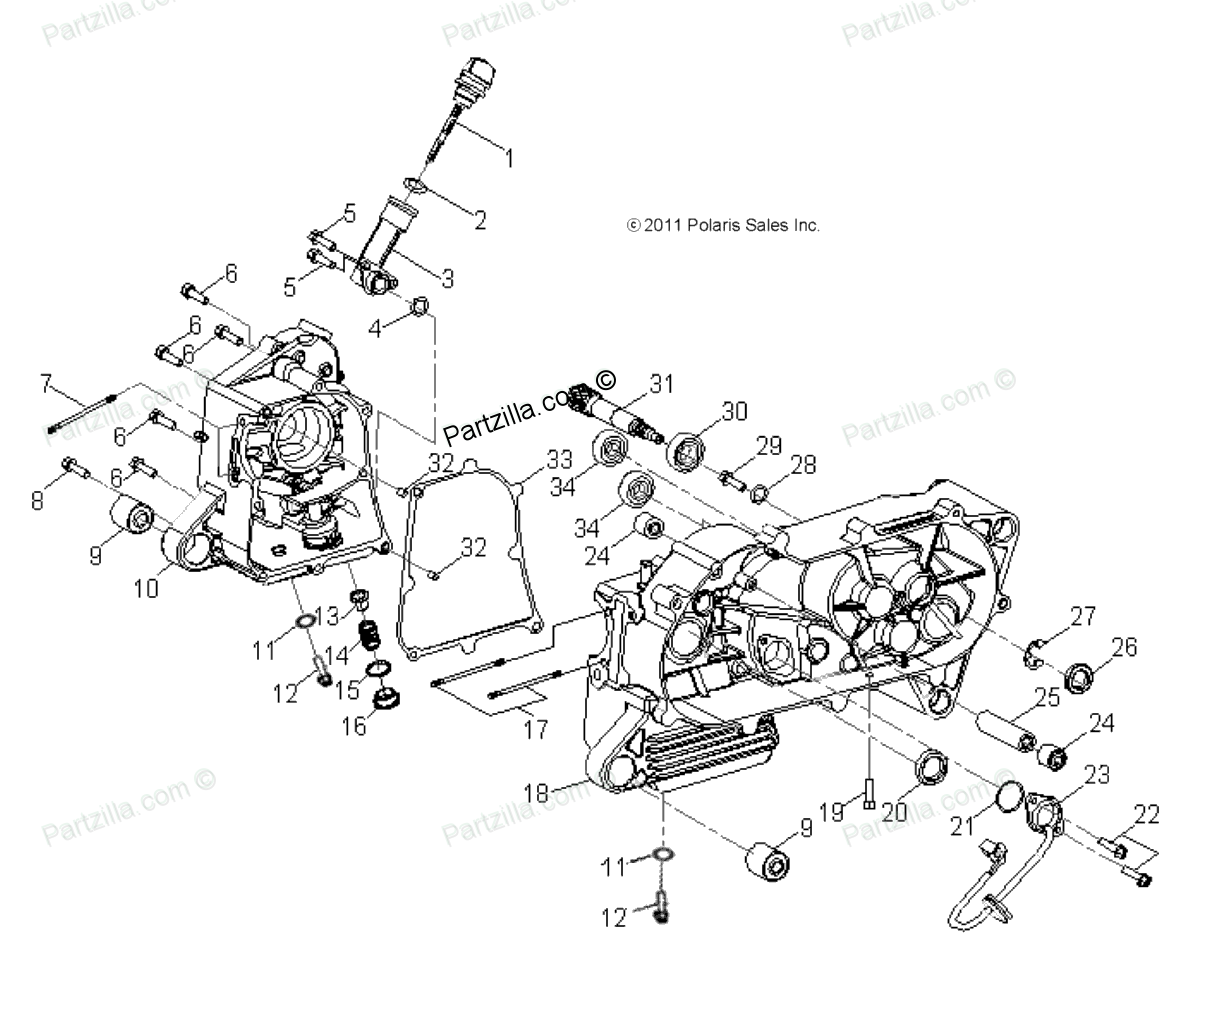 Polaris Outlaw 50 Idle Rev Limit Wiring Diagram